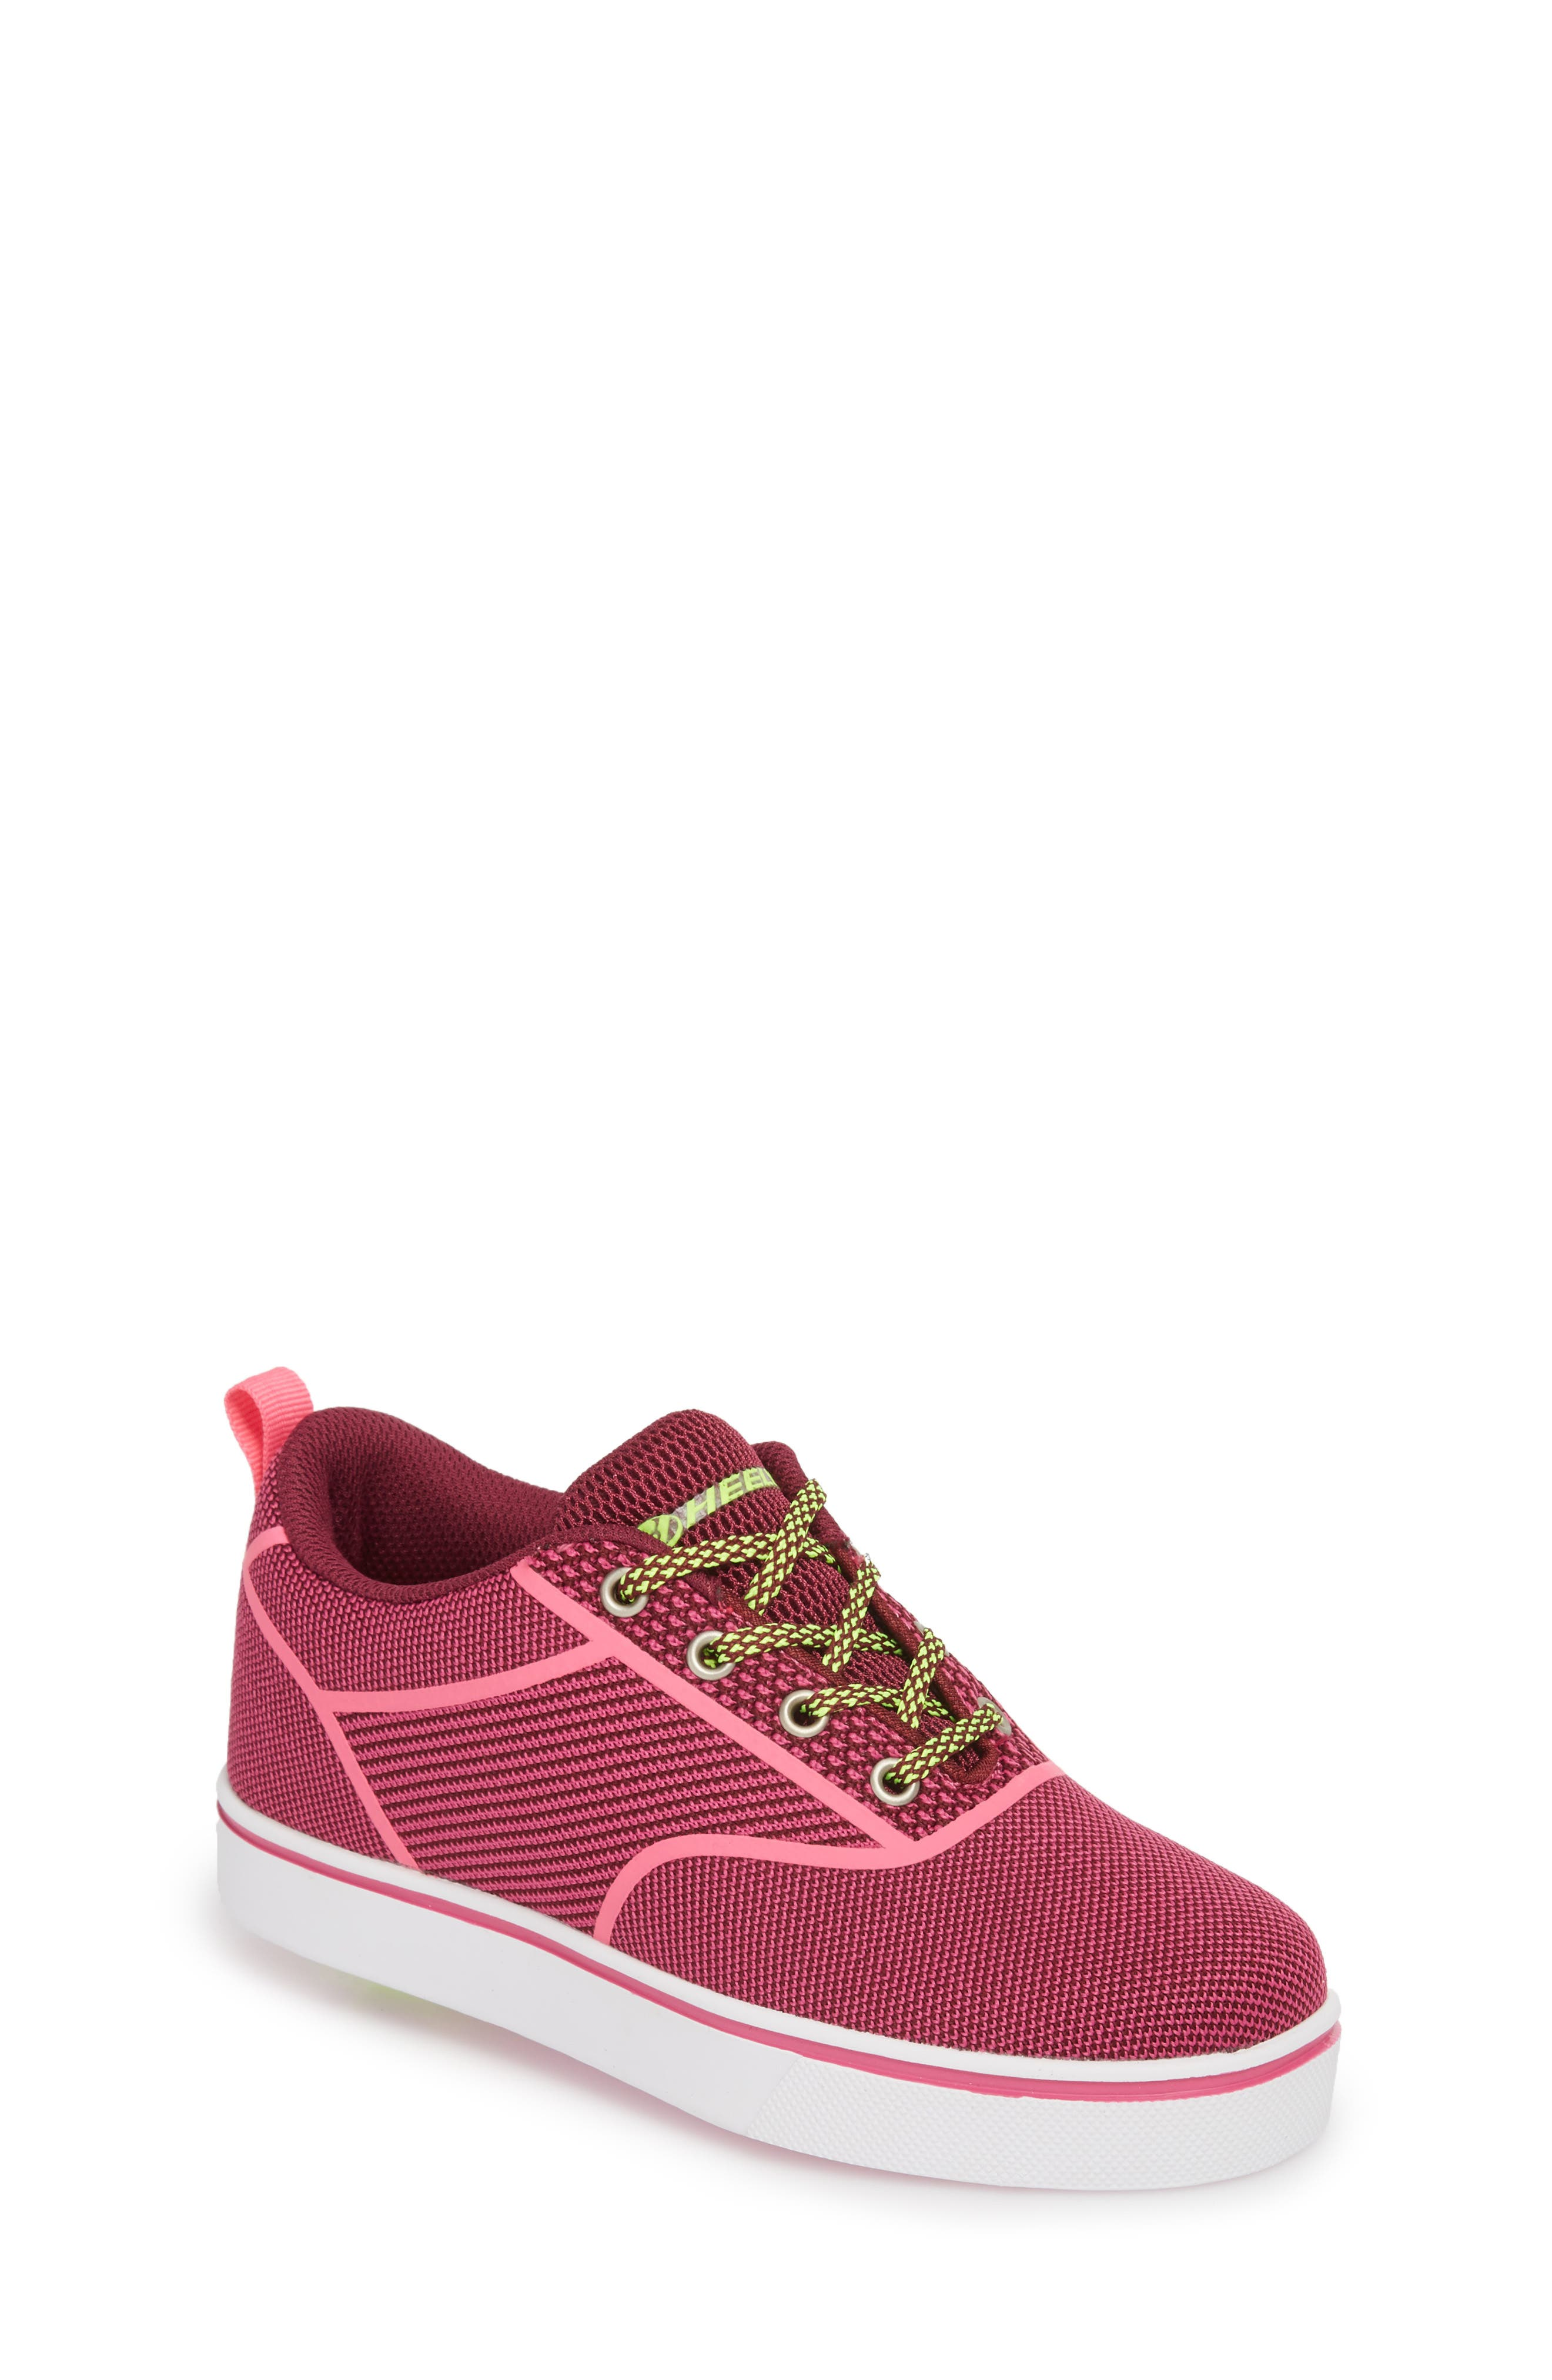 Launch Knit Sneaker,                             Main thumbnail 1, color,                             Berry/ Pink